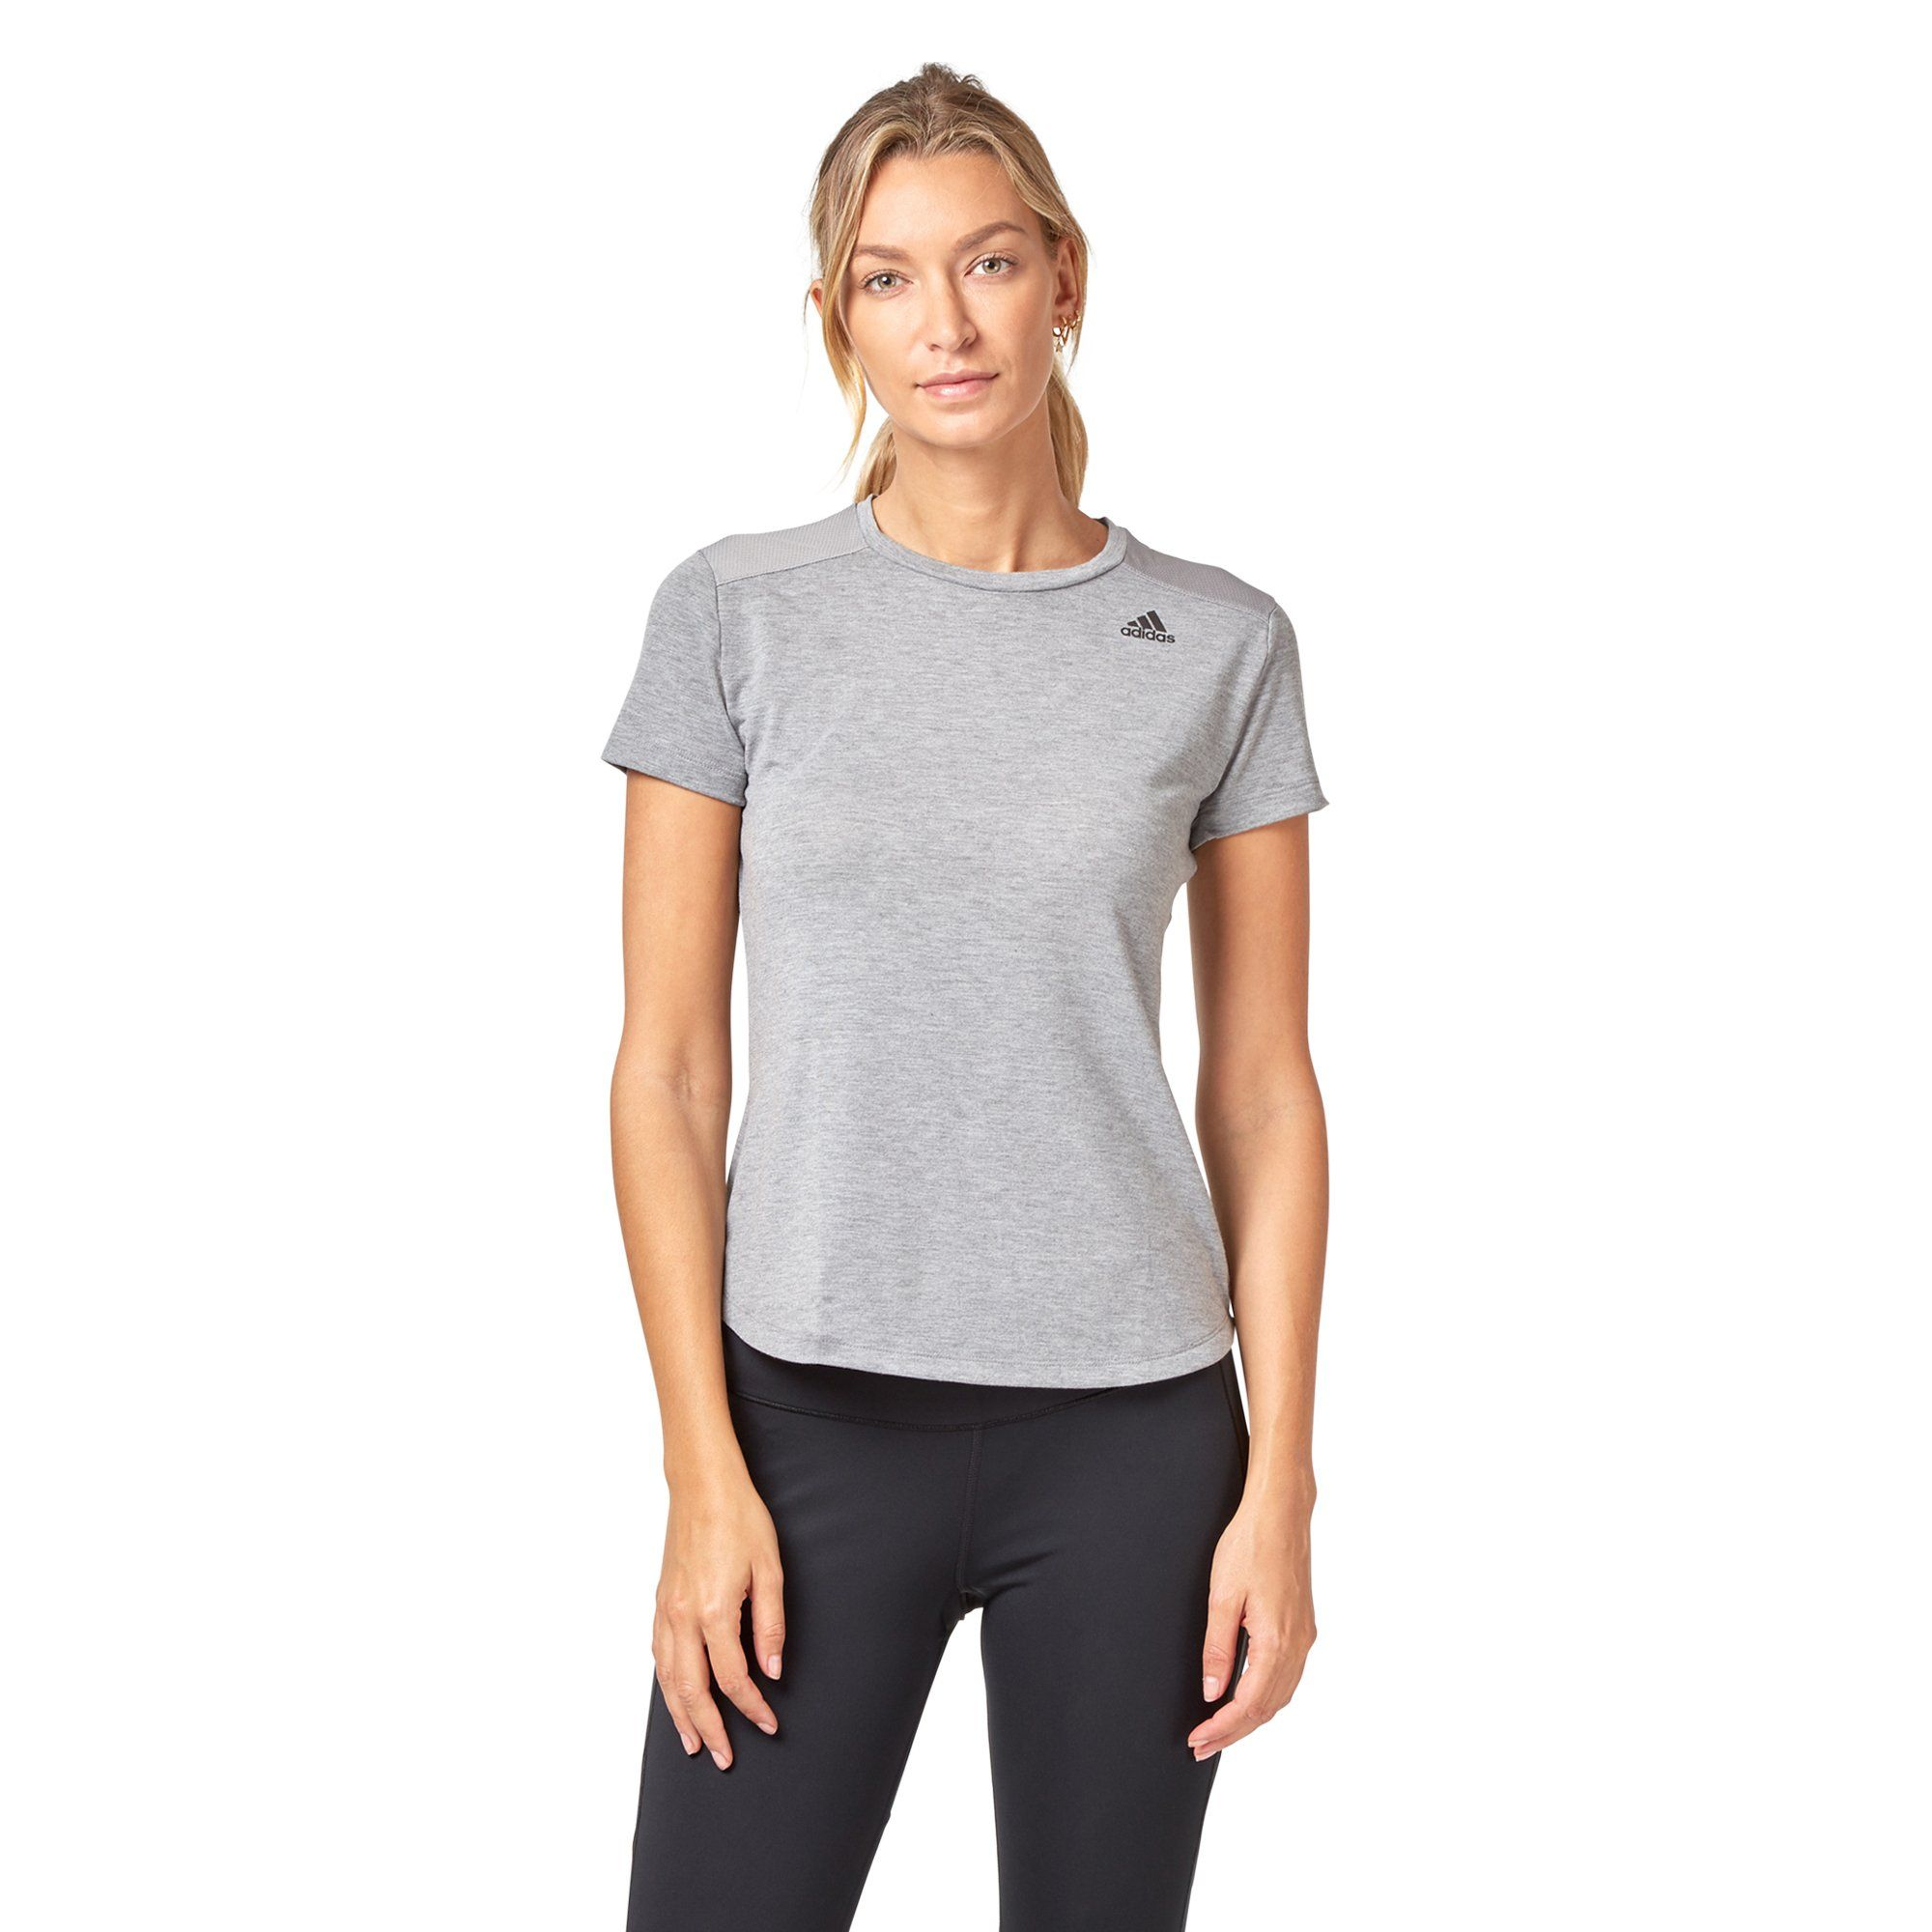 Adidas Women's Prime Mix Tee - Chalk solid grey SportsPower Geelong